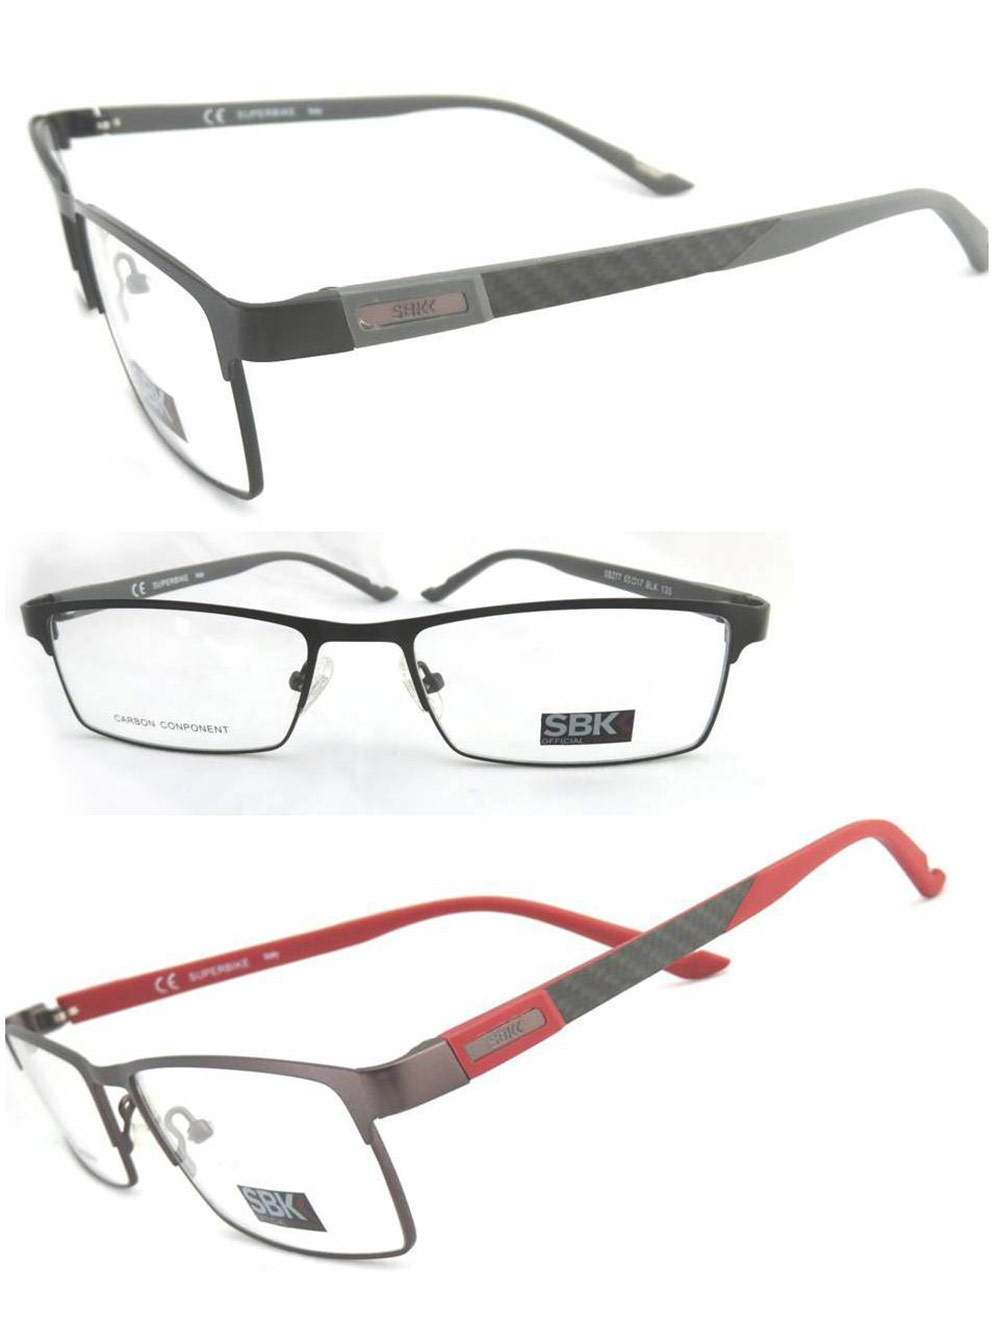 SBK Eyewear - SB277 - from Cardinal Eyewear NZ